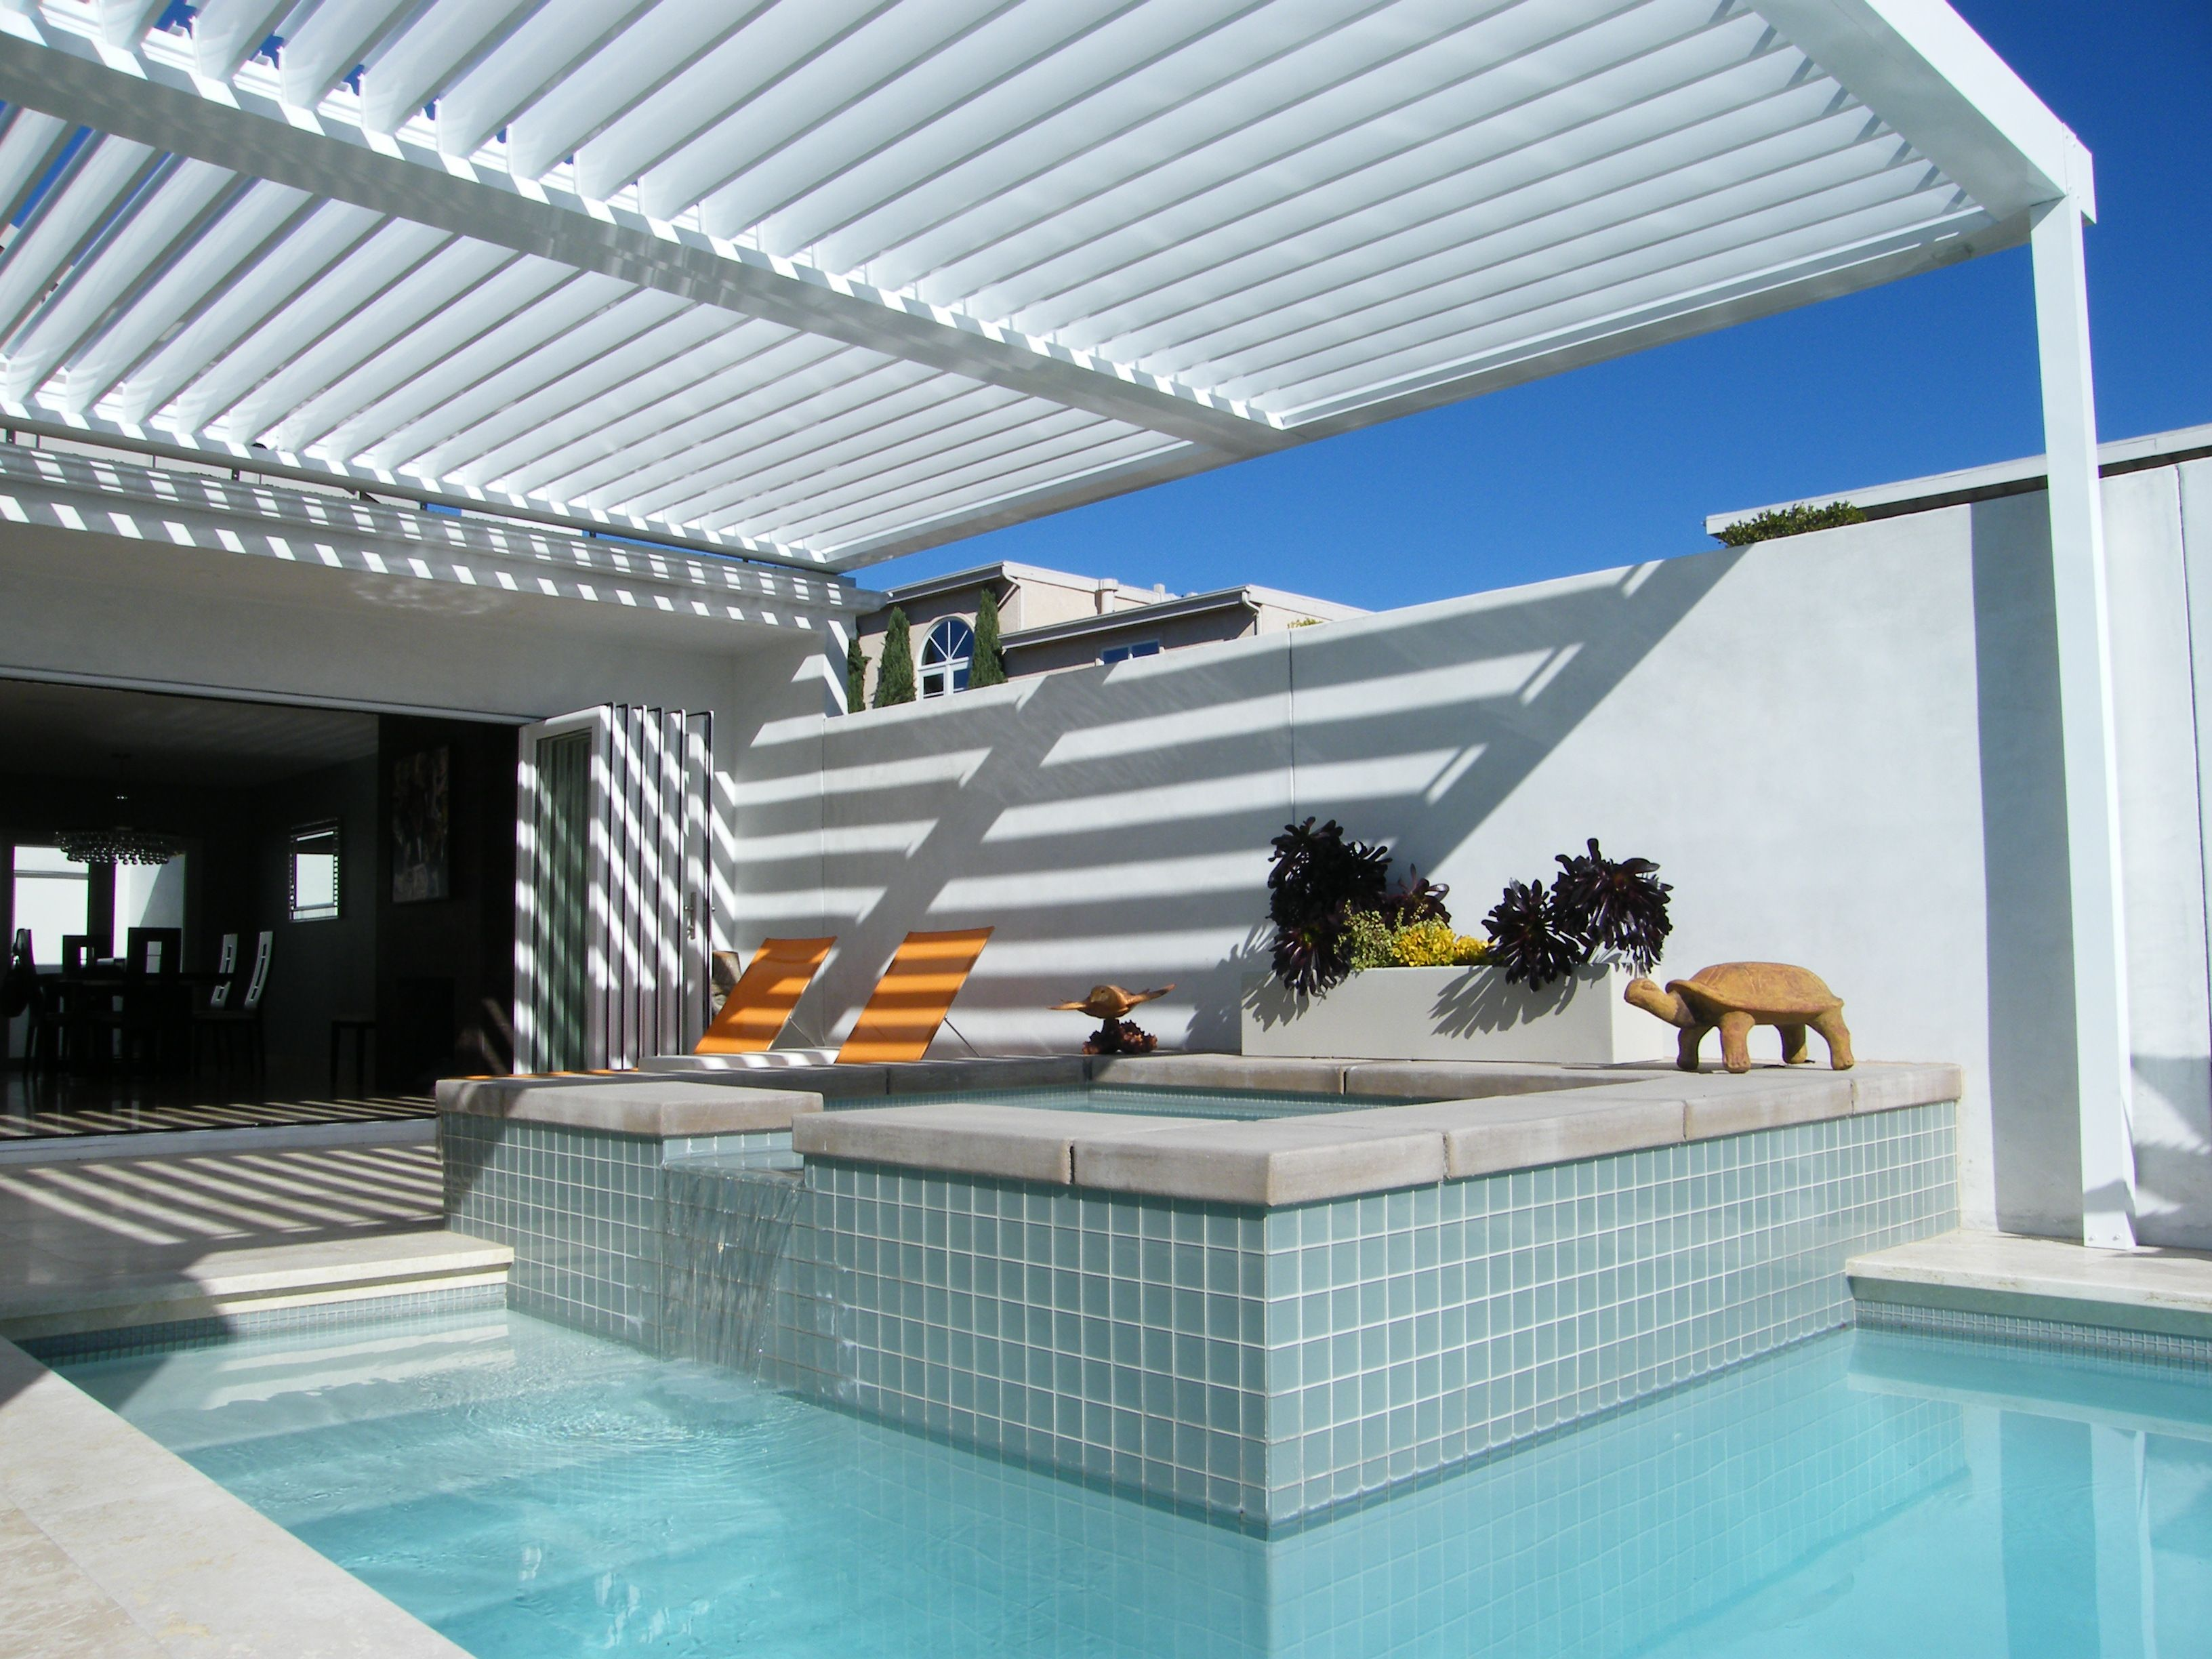 Equinox Louvered Roof system Patio Cover - Alumawood Factory ...